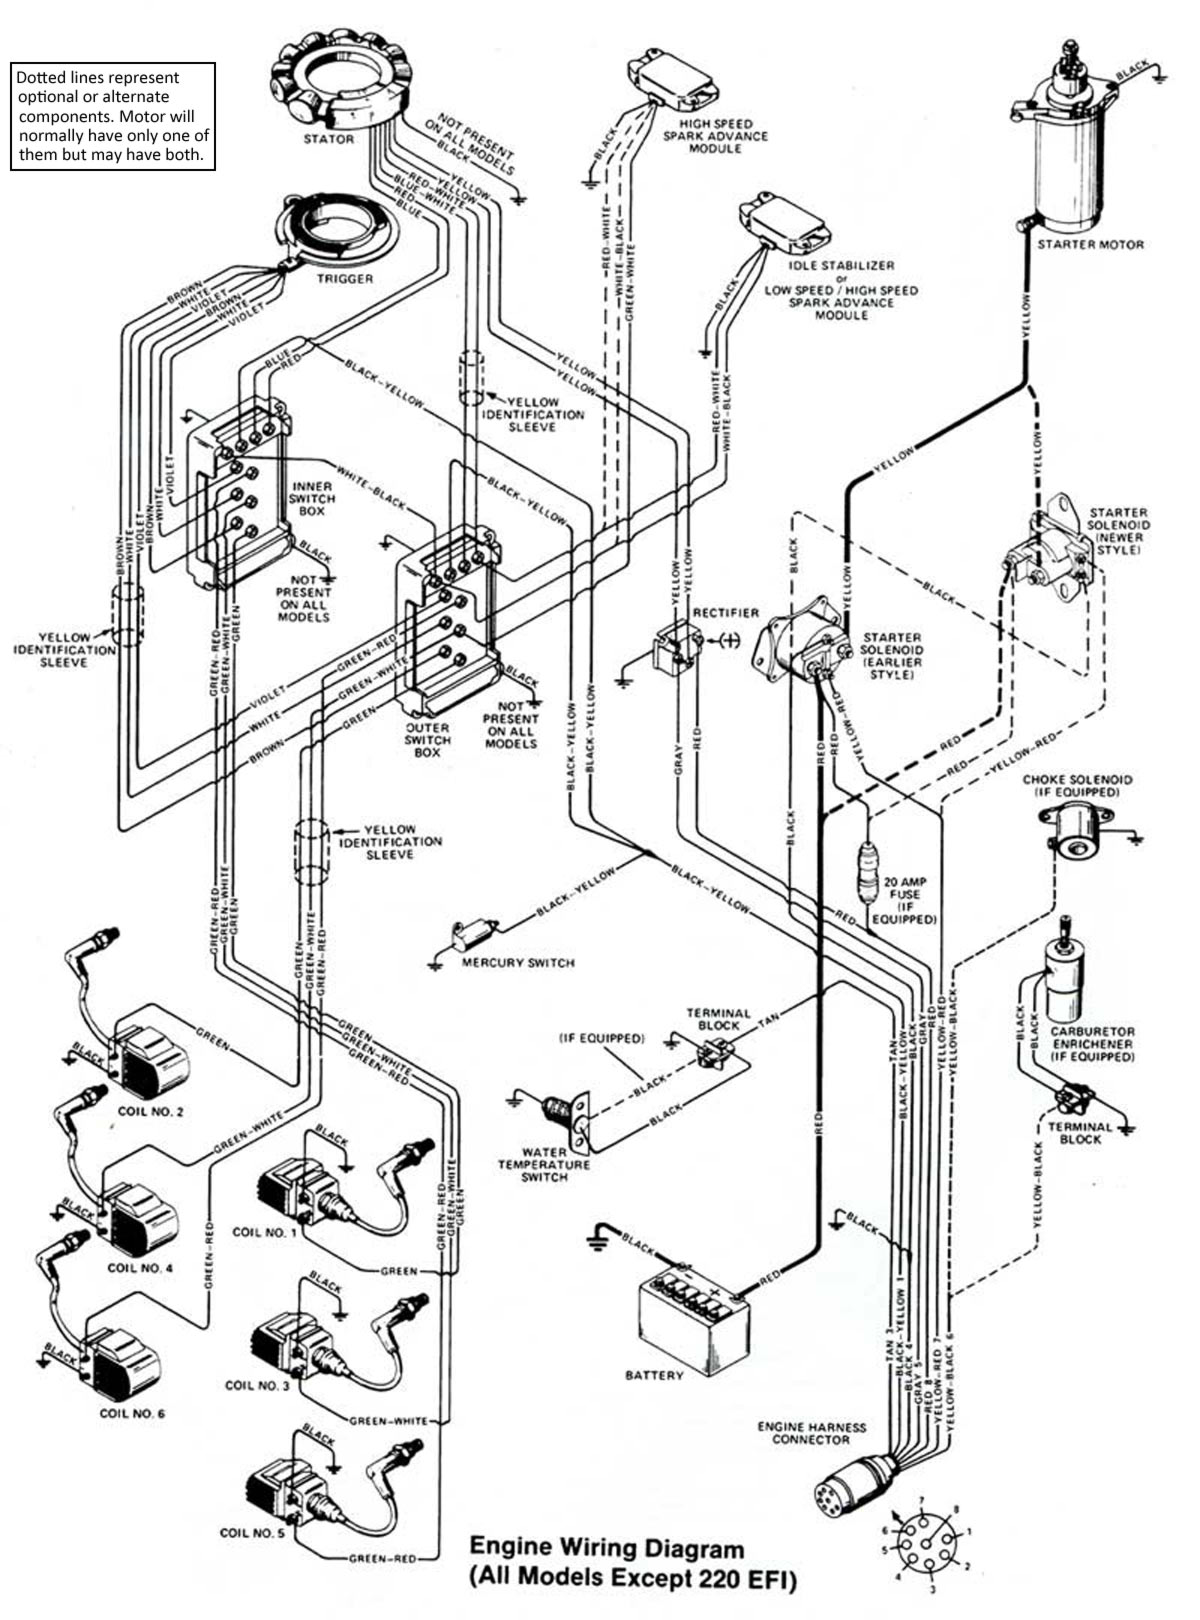 Mercury efi wiring diagram wiring diagrams mercury 200 20 hp wiring diagram 200 hp mercury wiring